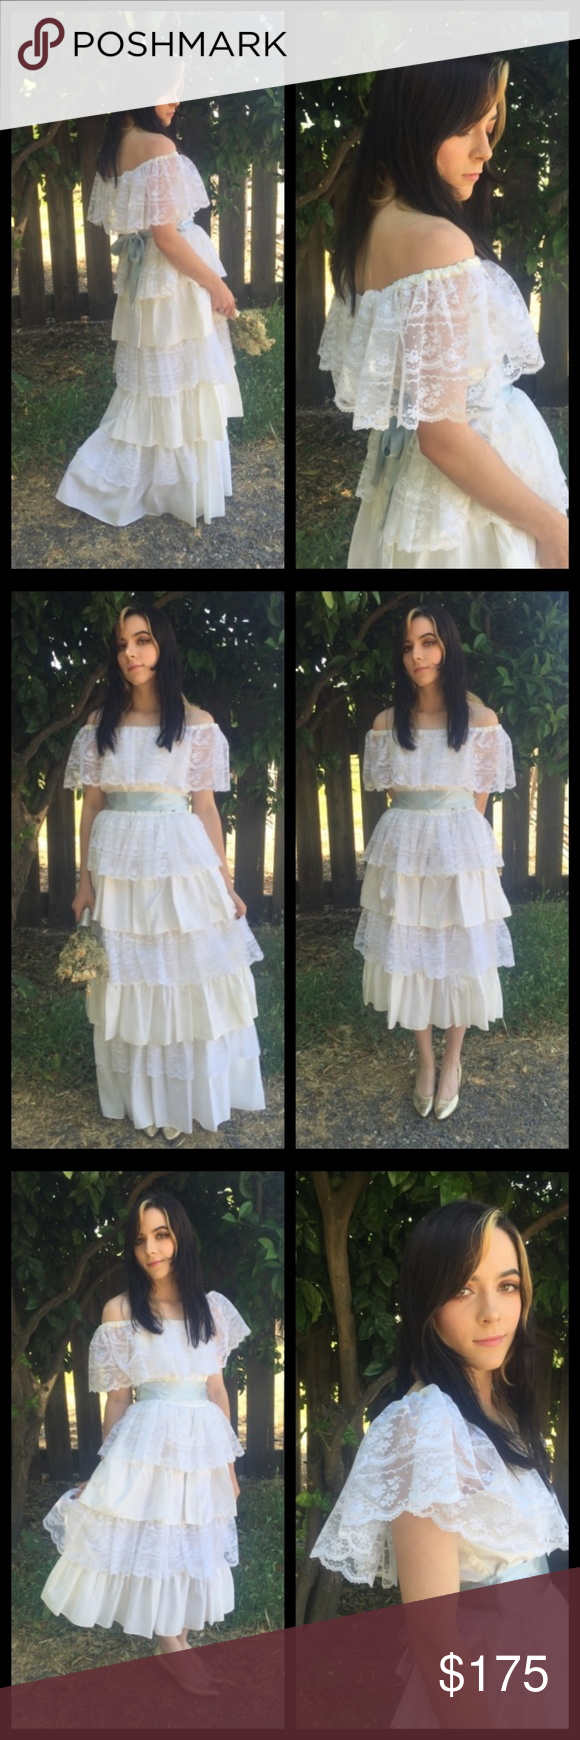 Amazing vtg s boho tiered lace wedding dress vintage dress